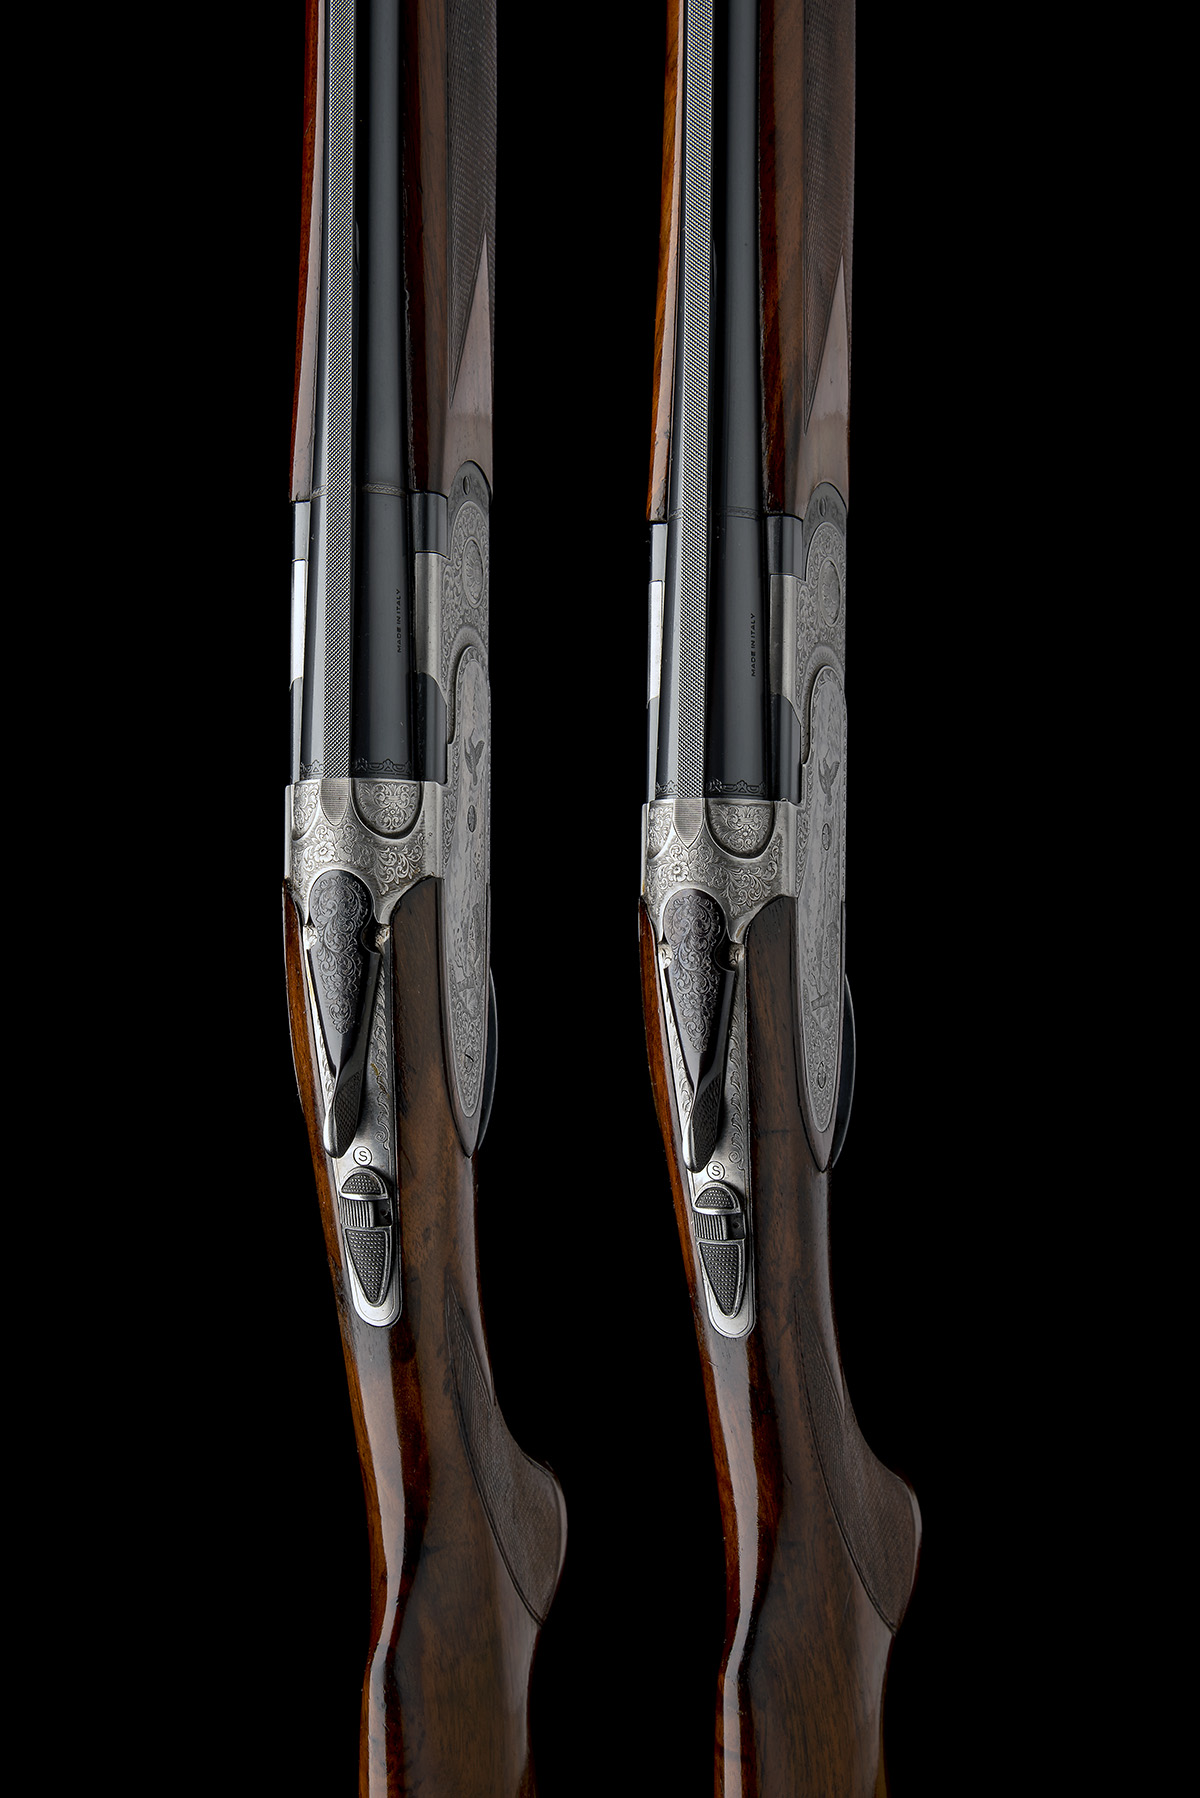 P. BERETTA A PAIR OF 20-BORE 'MOD. 687 EELL' SINGLE-TRIGGER OVER AND UNDER EJECTORS, serial no. - Image 6 of 10